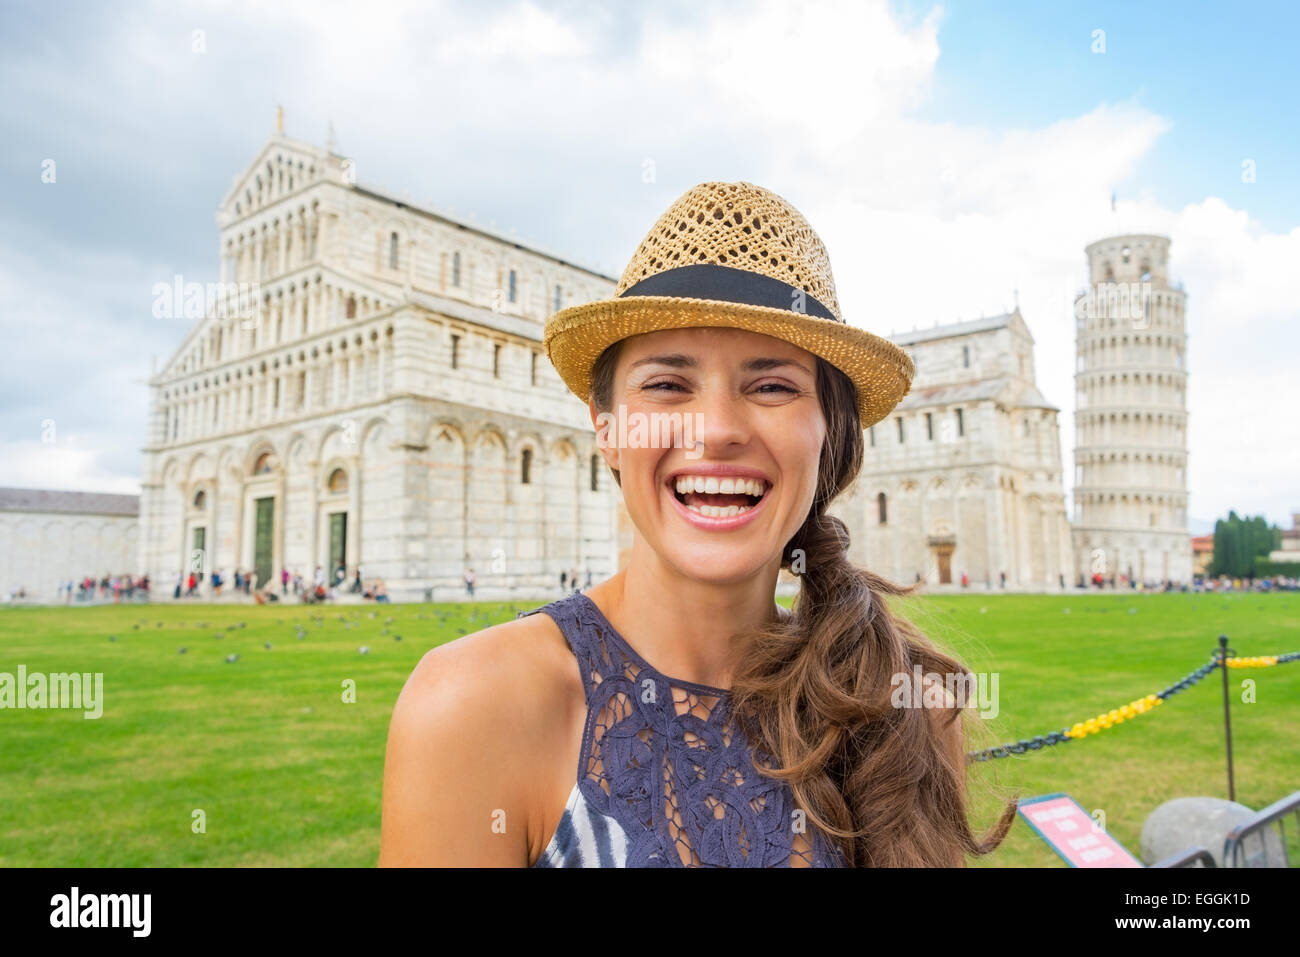 Portrait of happy young woman on piazza dei miracoli, pisa, tuscany, italy Stock Photo